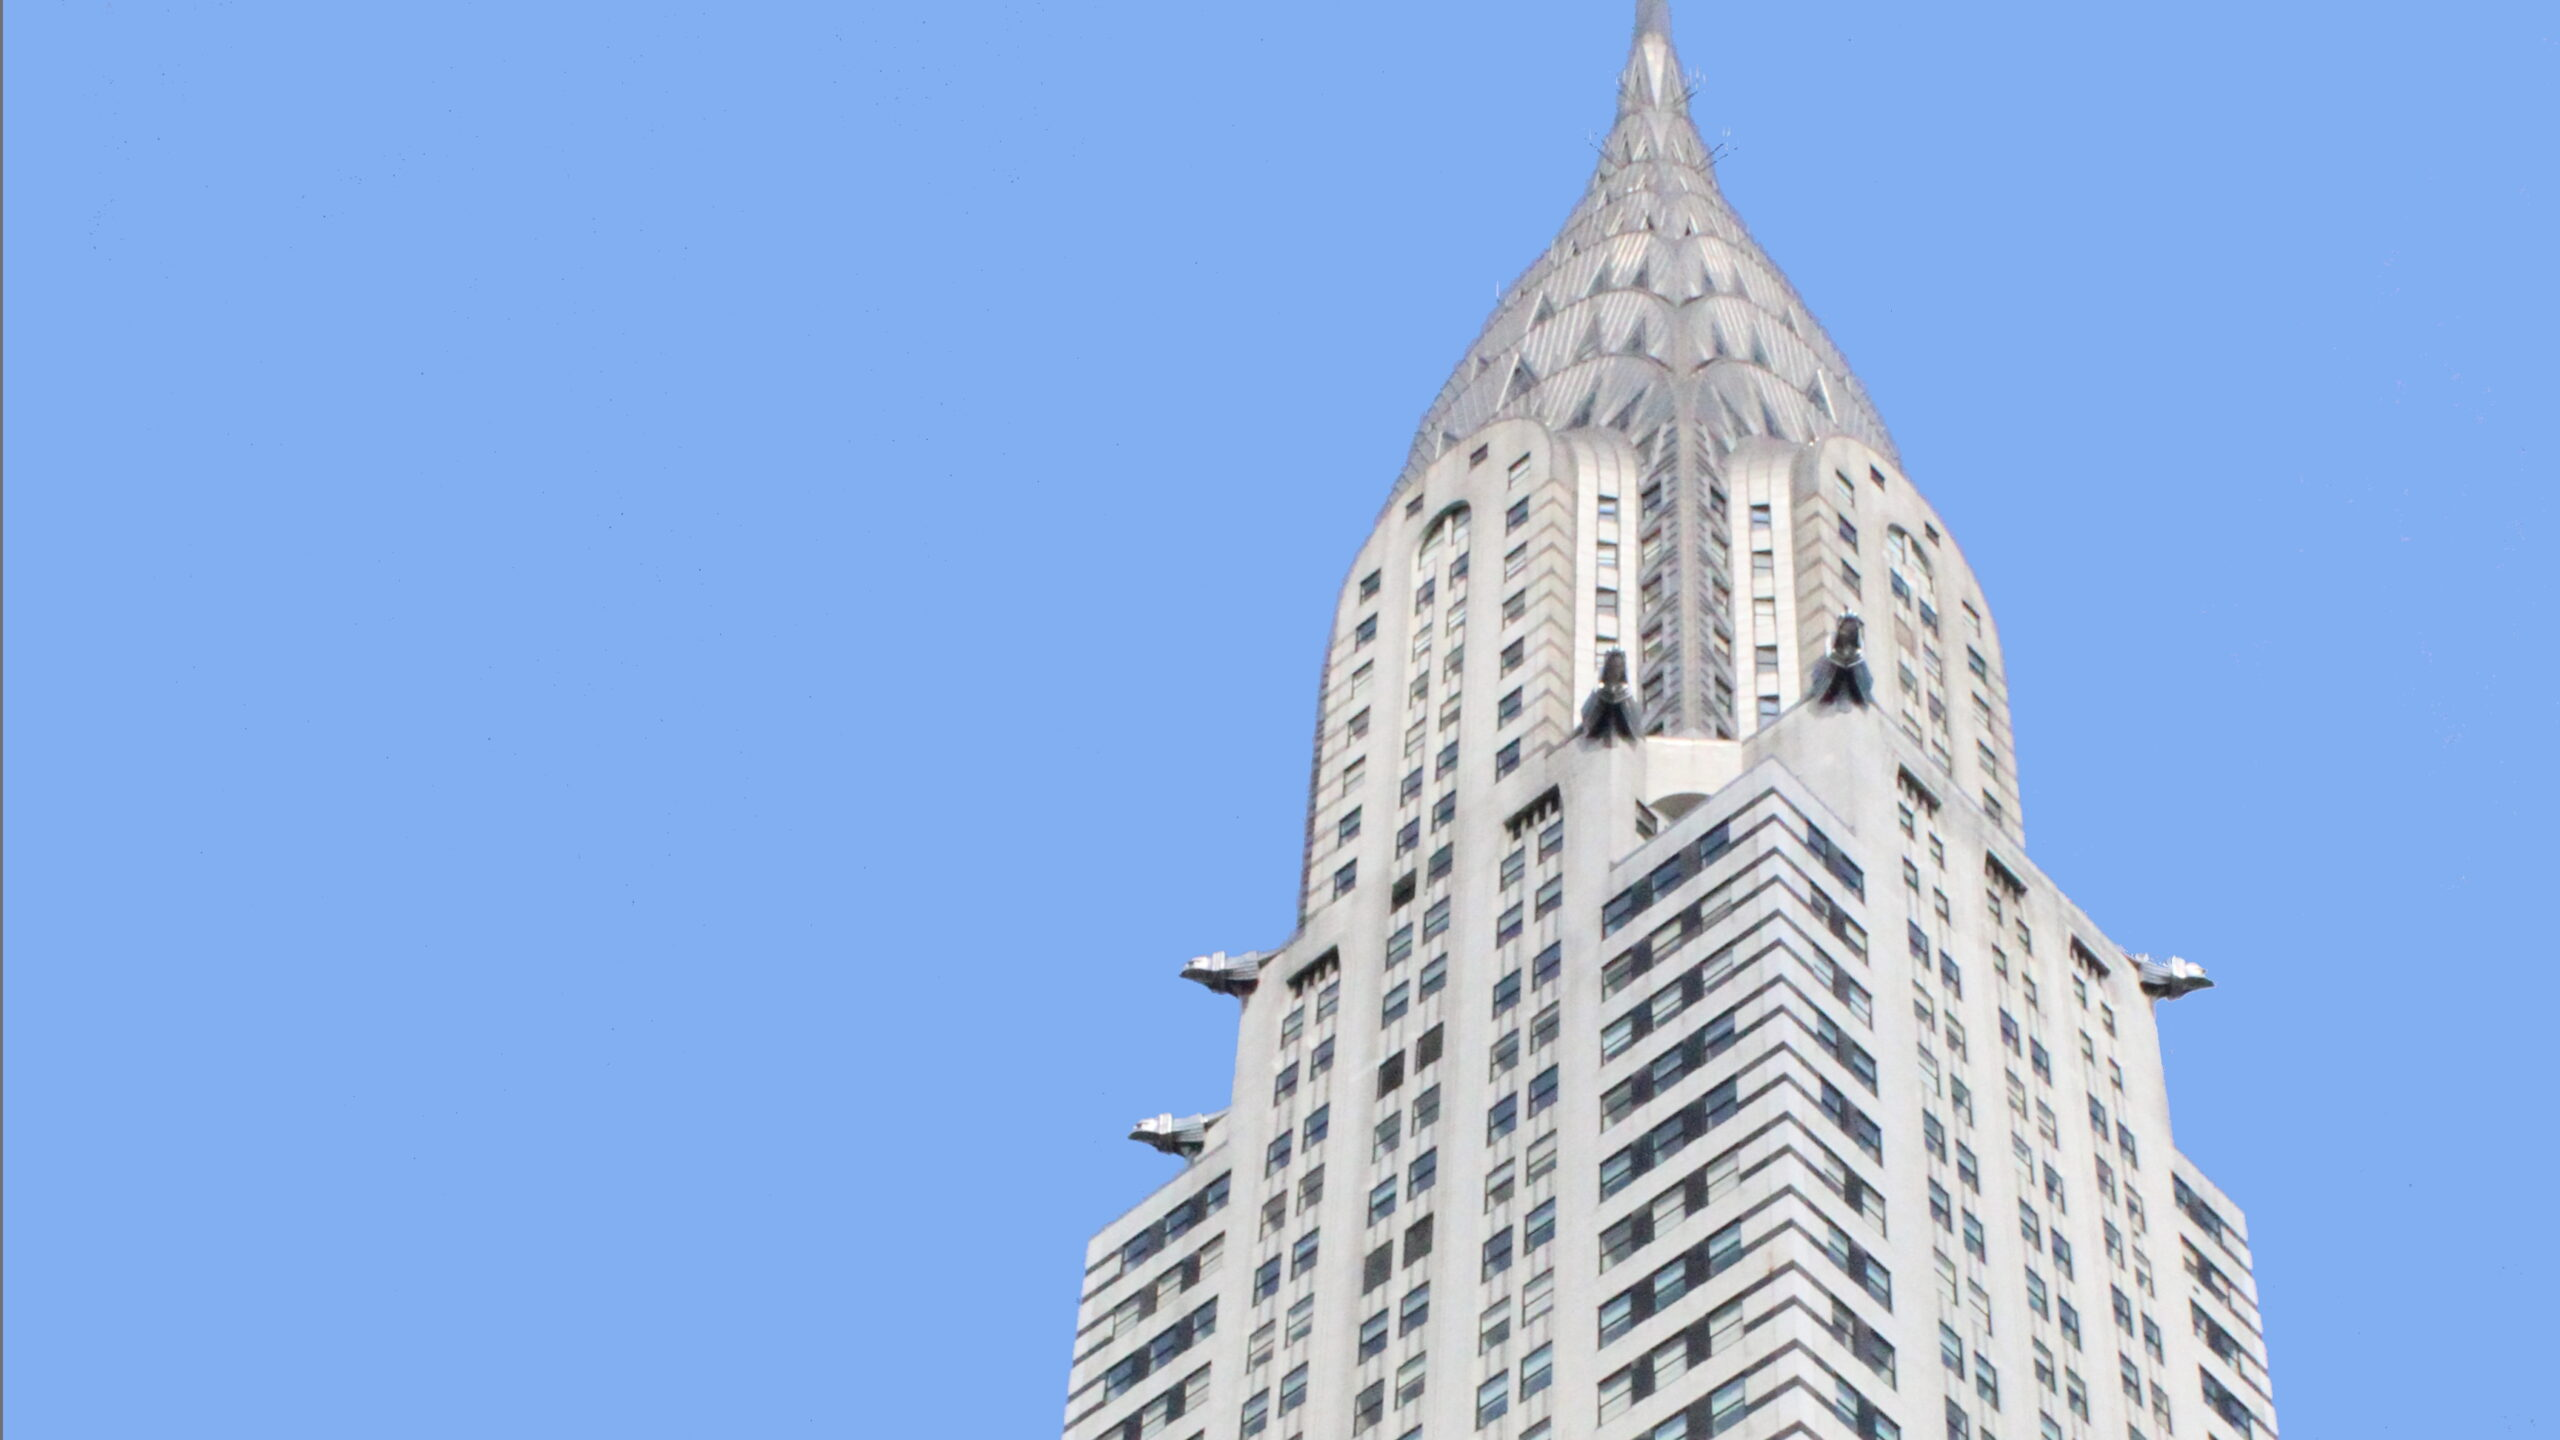 Chrysler Building against blue sky